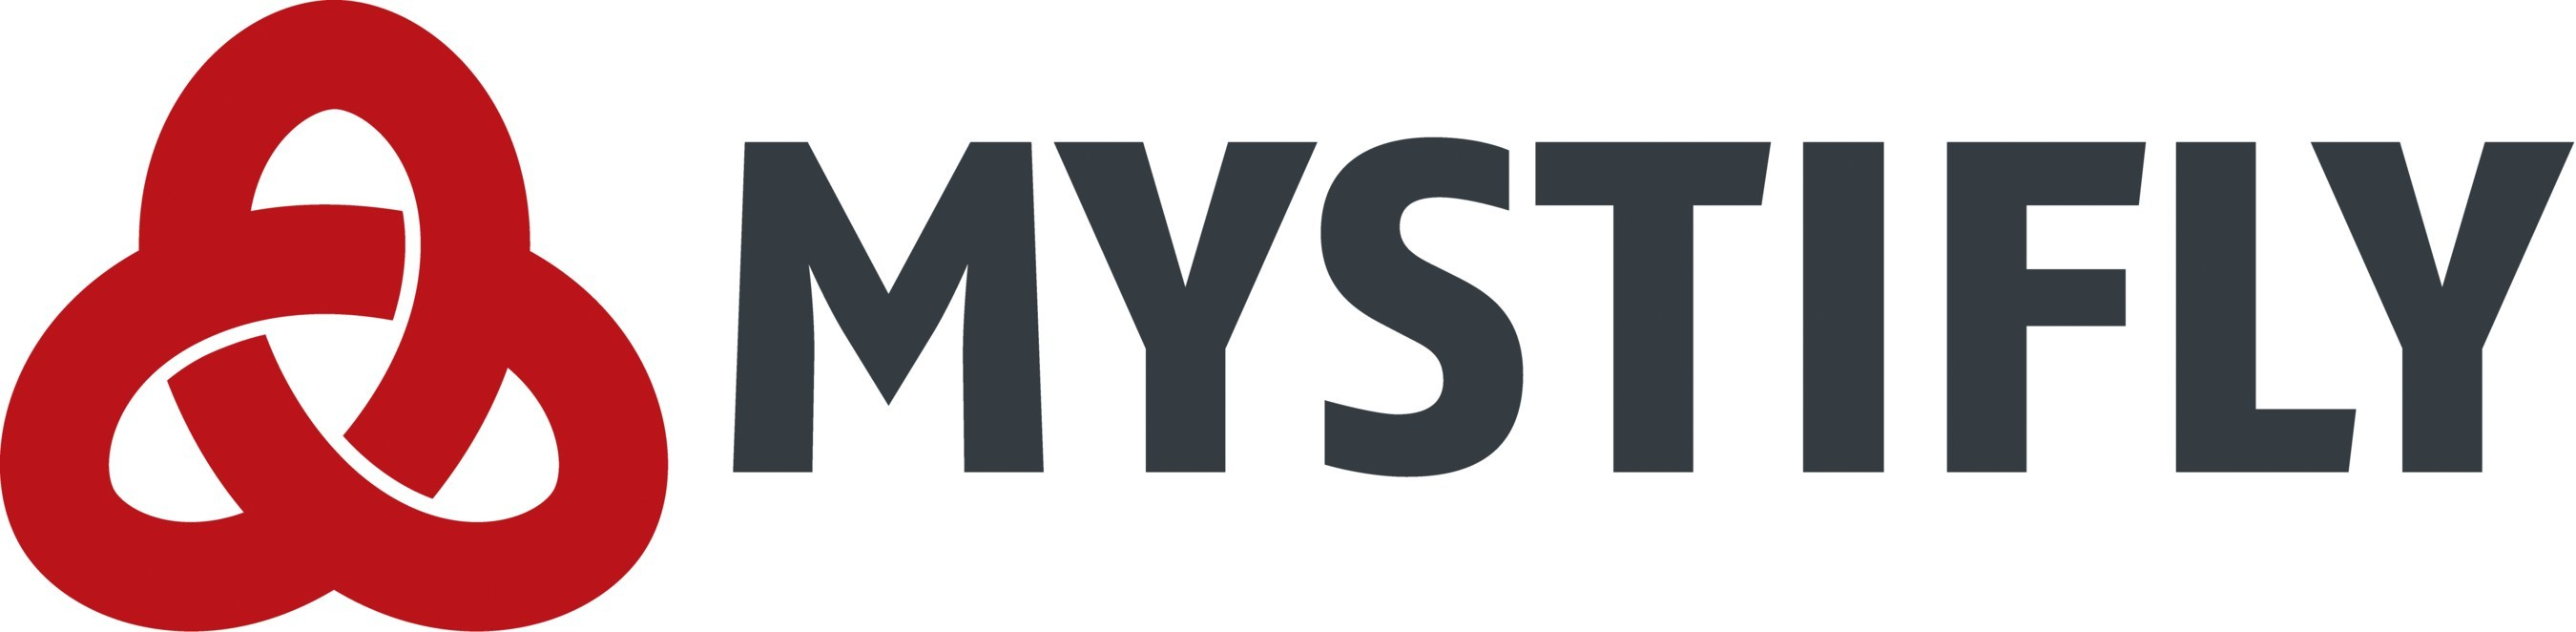 Mystifly Announces Launch of 'OnePoint C2' - Industry's First API Tailored to Elevate Air Travel Retailing Experience